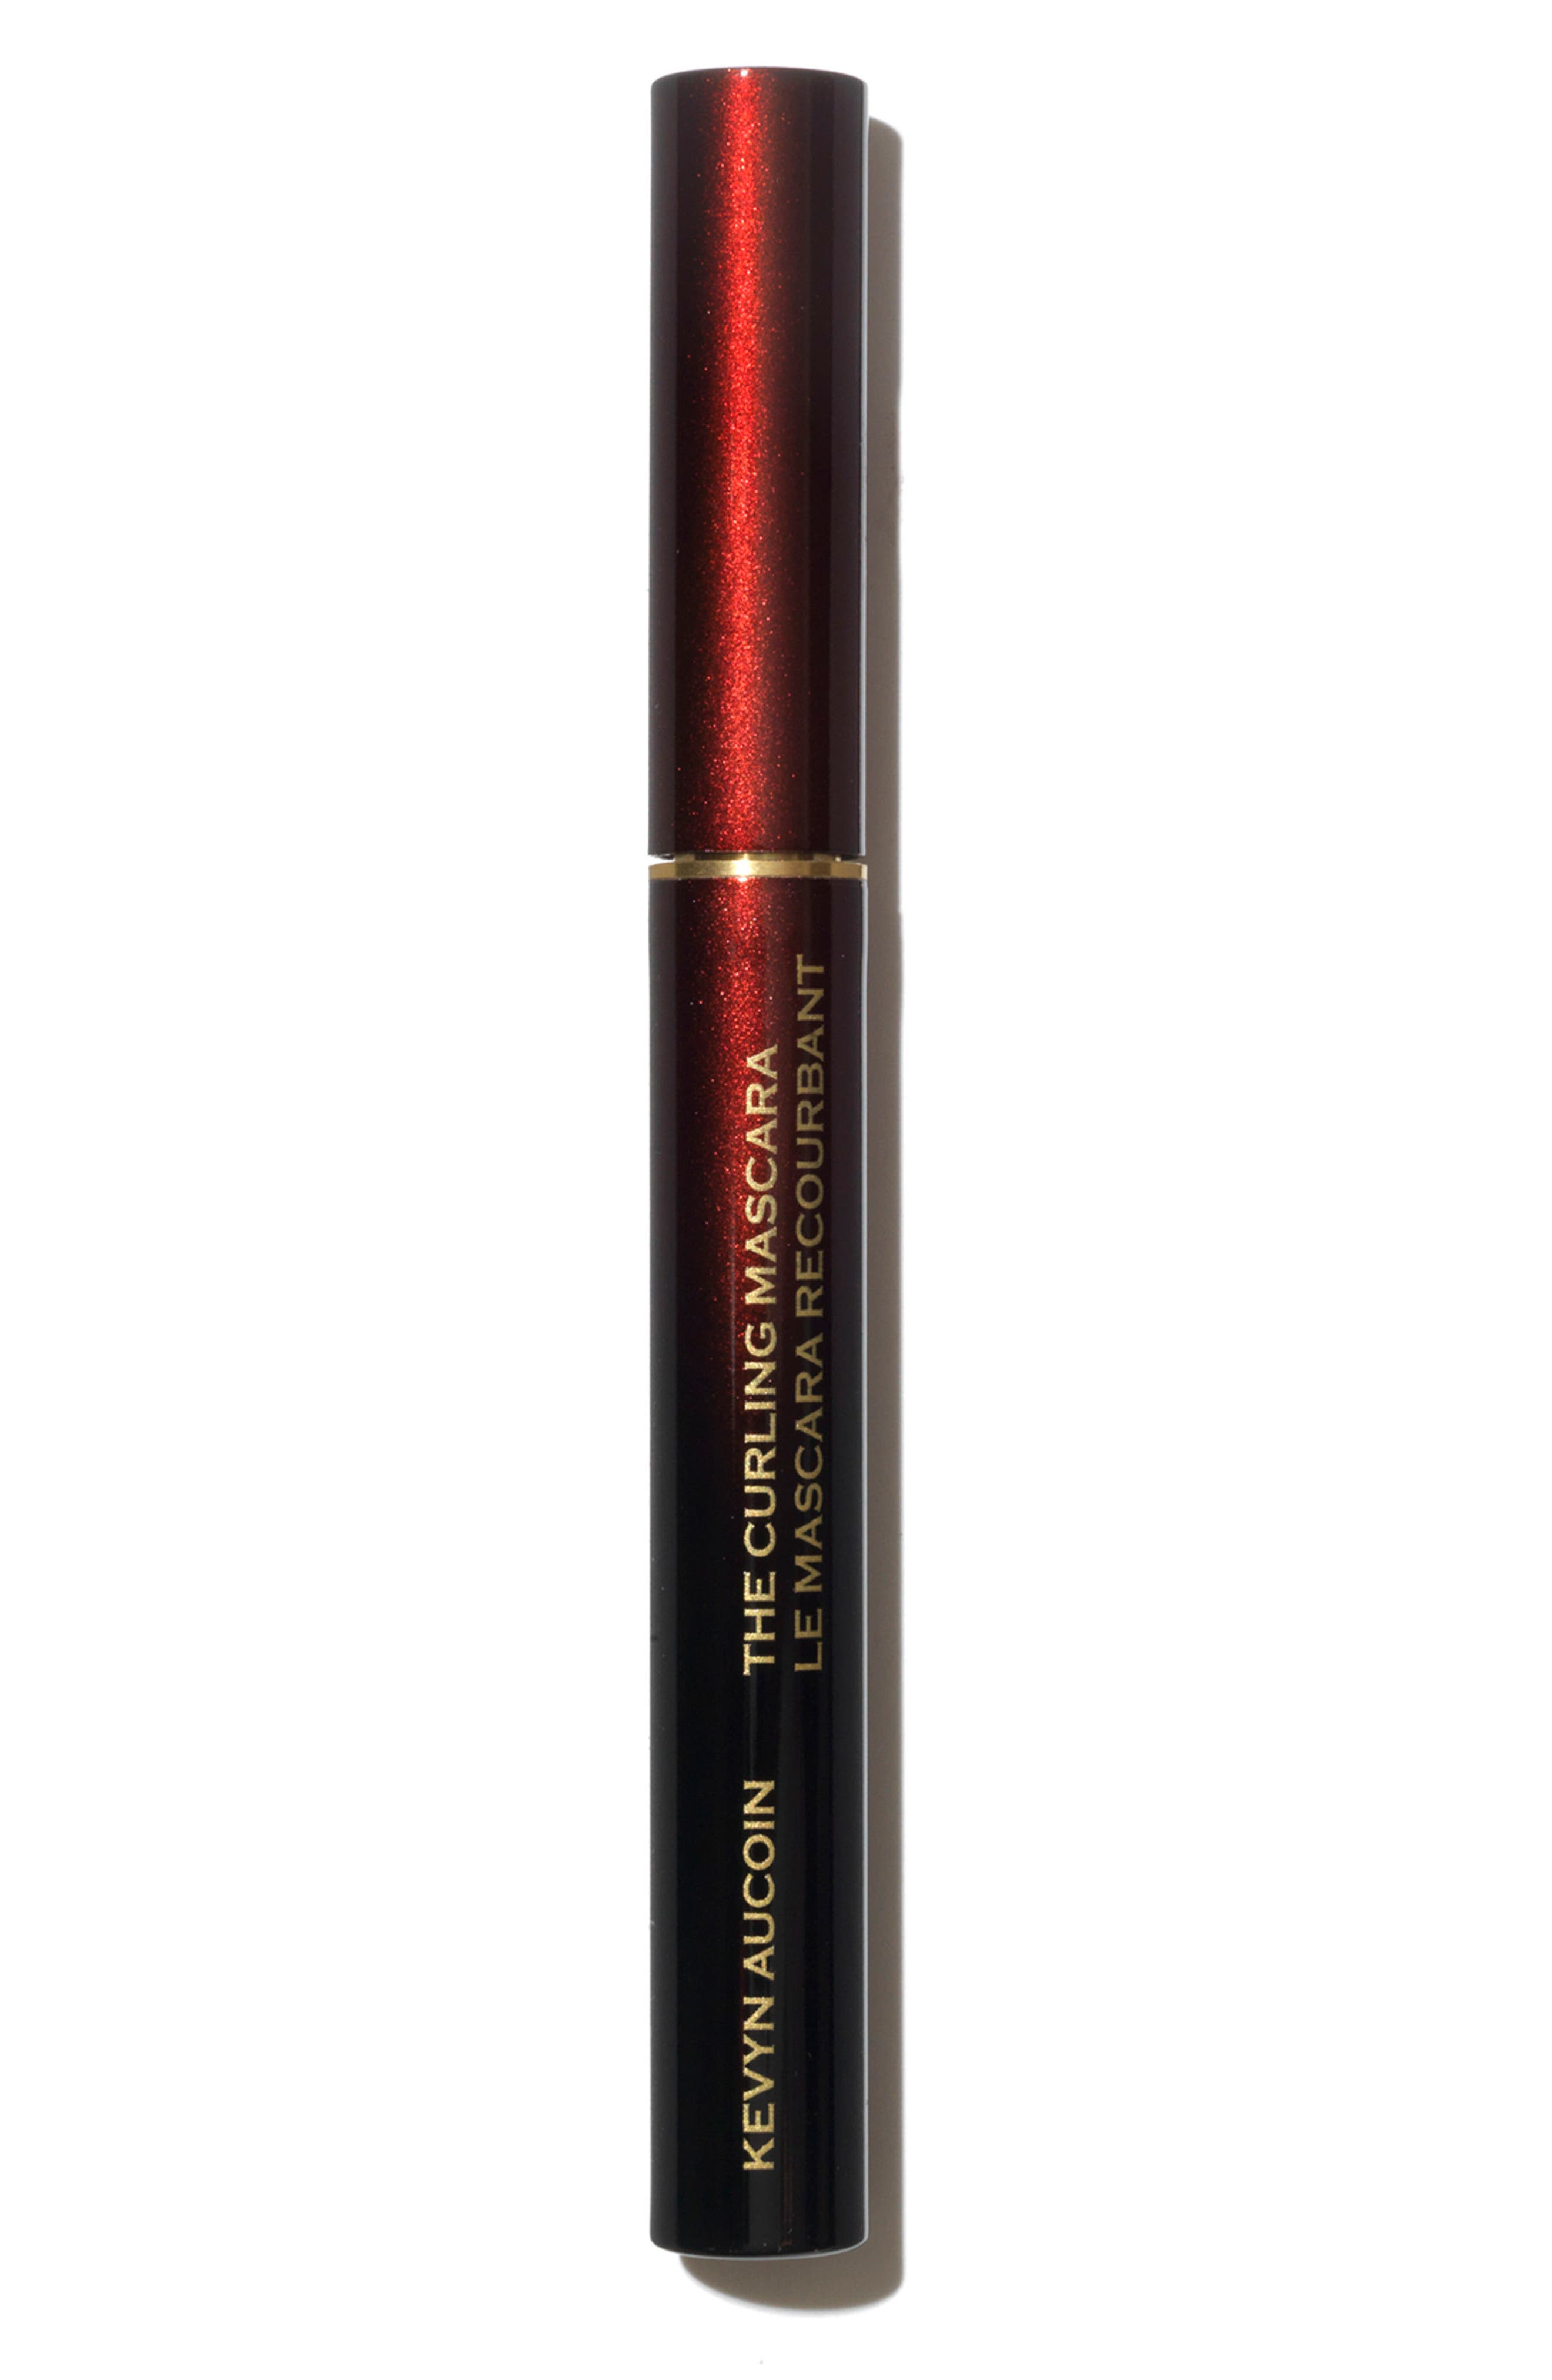 KEVYN AUCOIN BEAUTY, SPACE.NK.apothecary Kevyn Aucoin Beauty The Curling Mascara, Alternate thumbnail 3, color, RICH PITCH BLACK